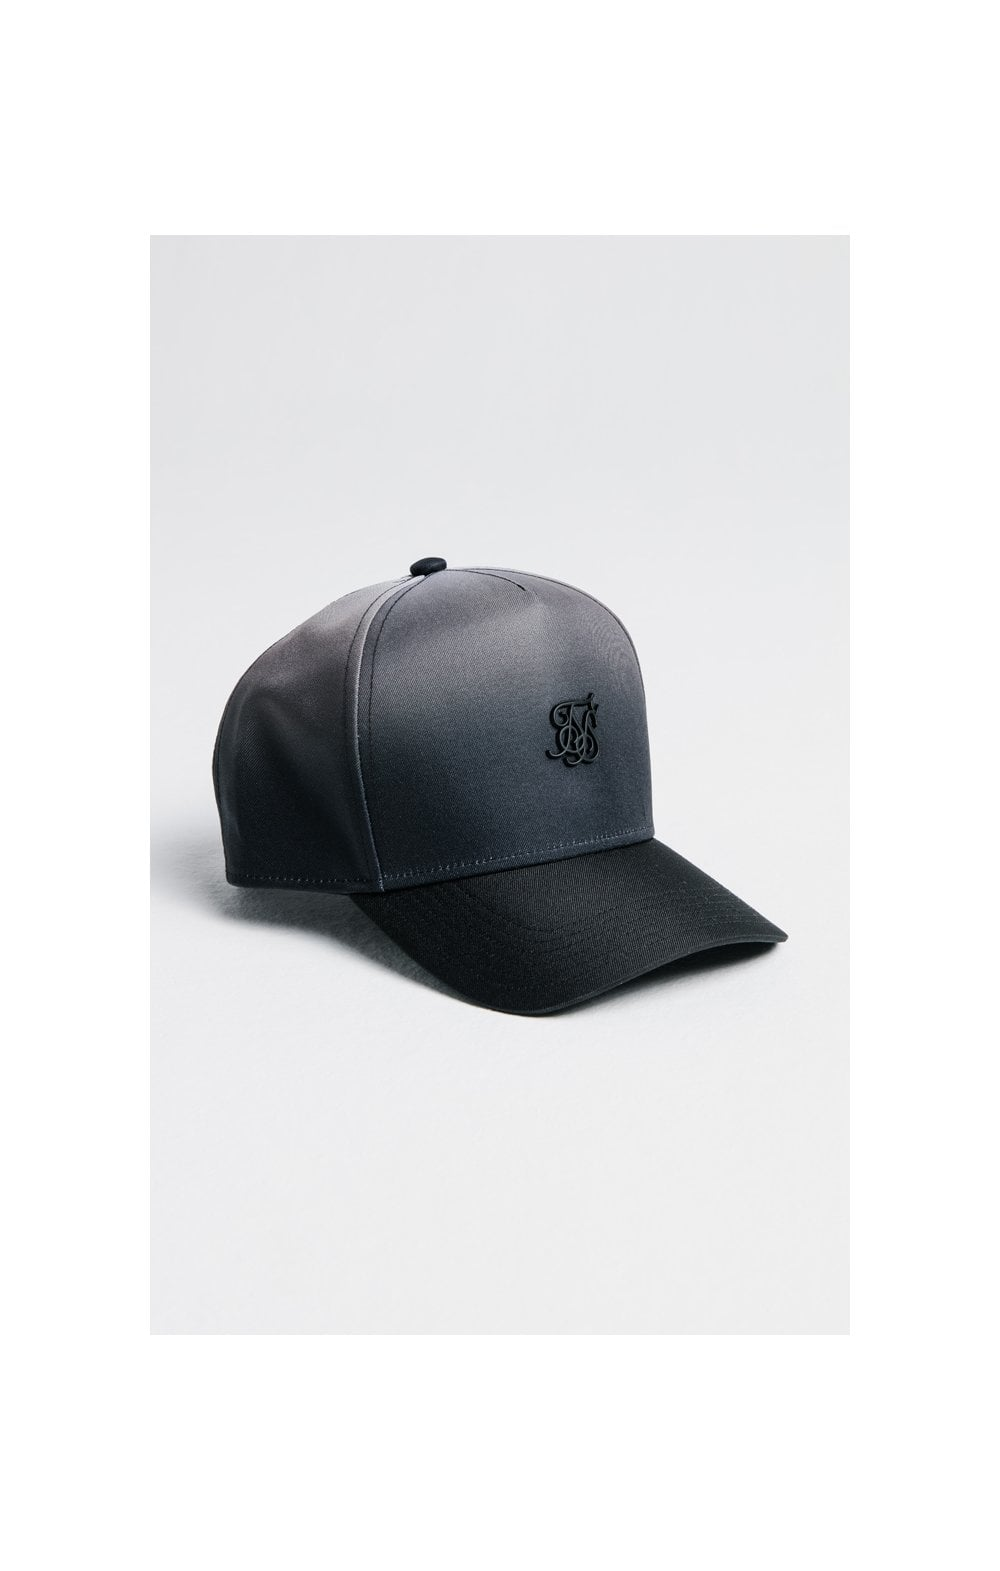 SikSilk Full Fade Trucker - Black & Grey